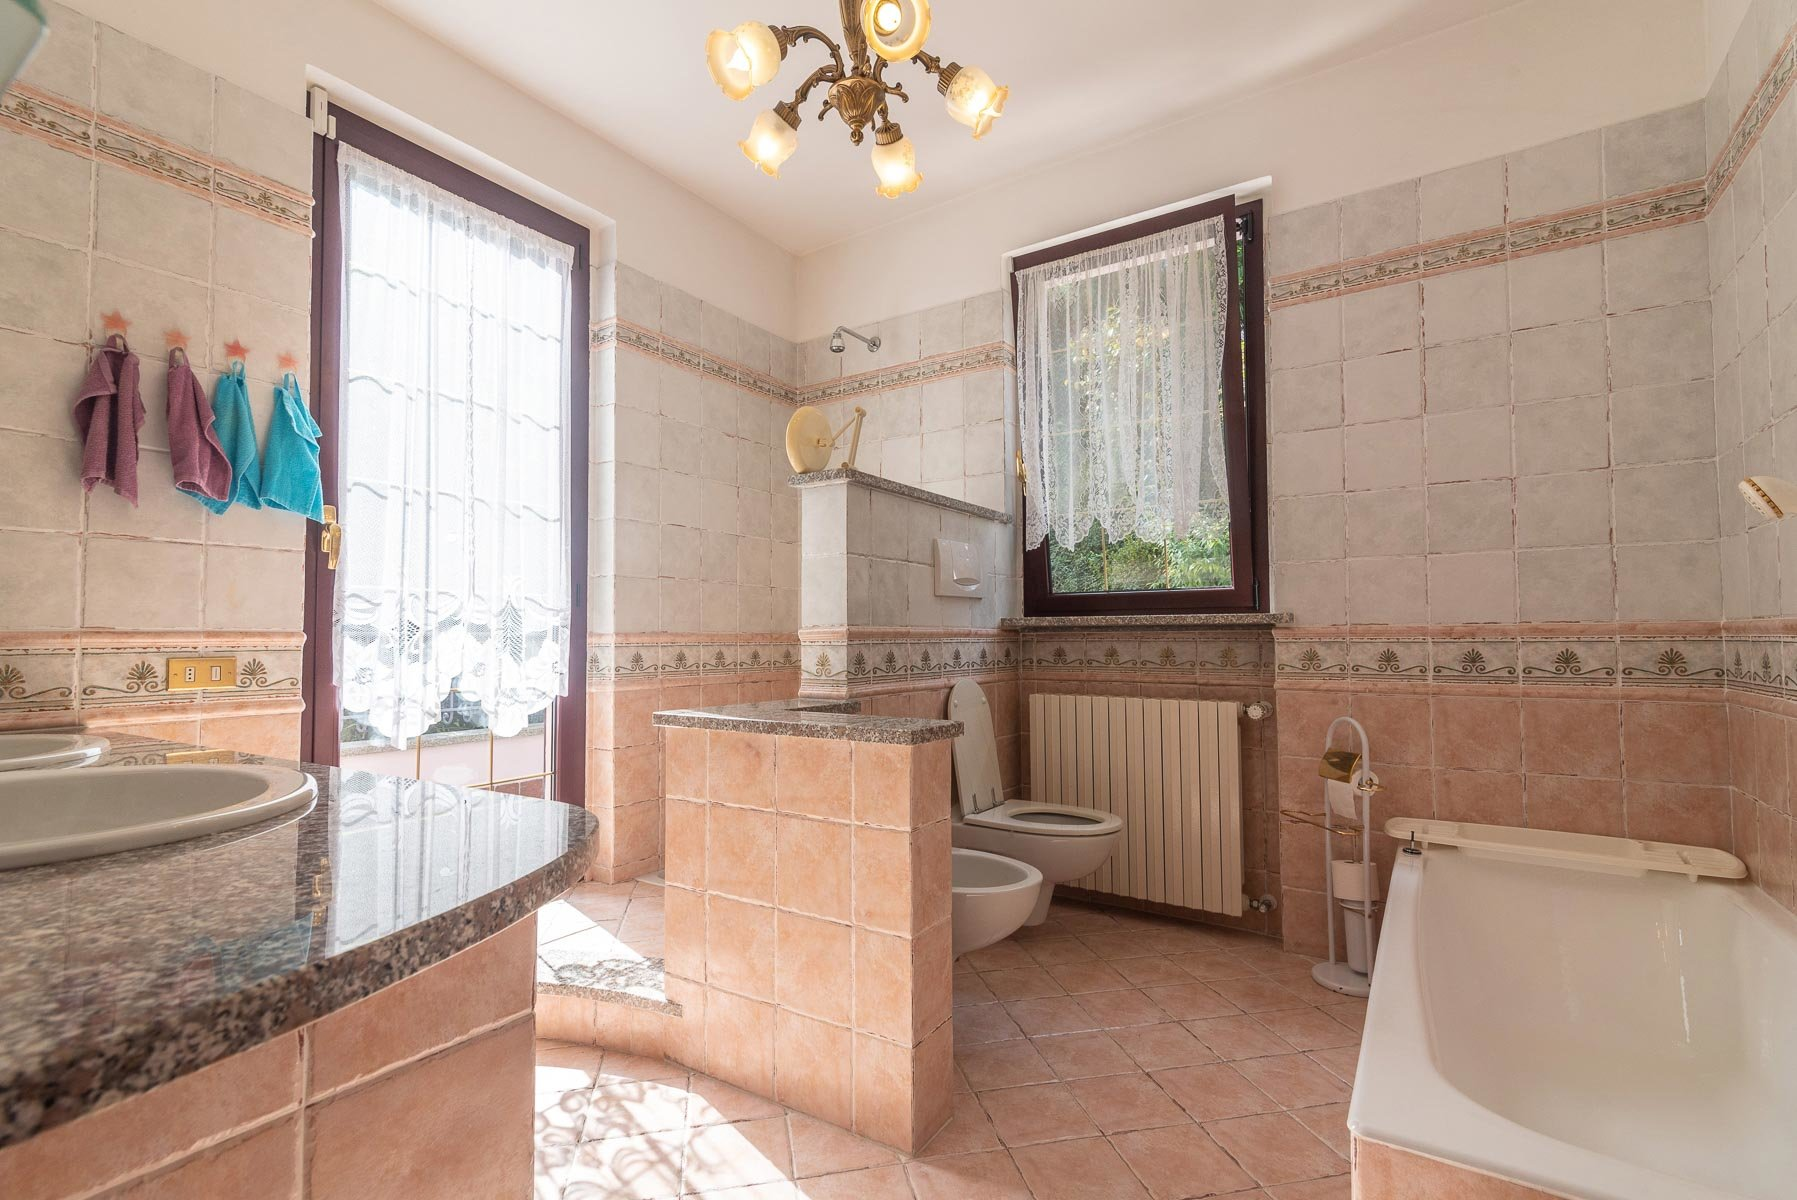 Modern villa near Stresa centre - bathroom with tub